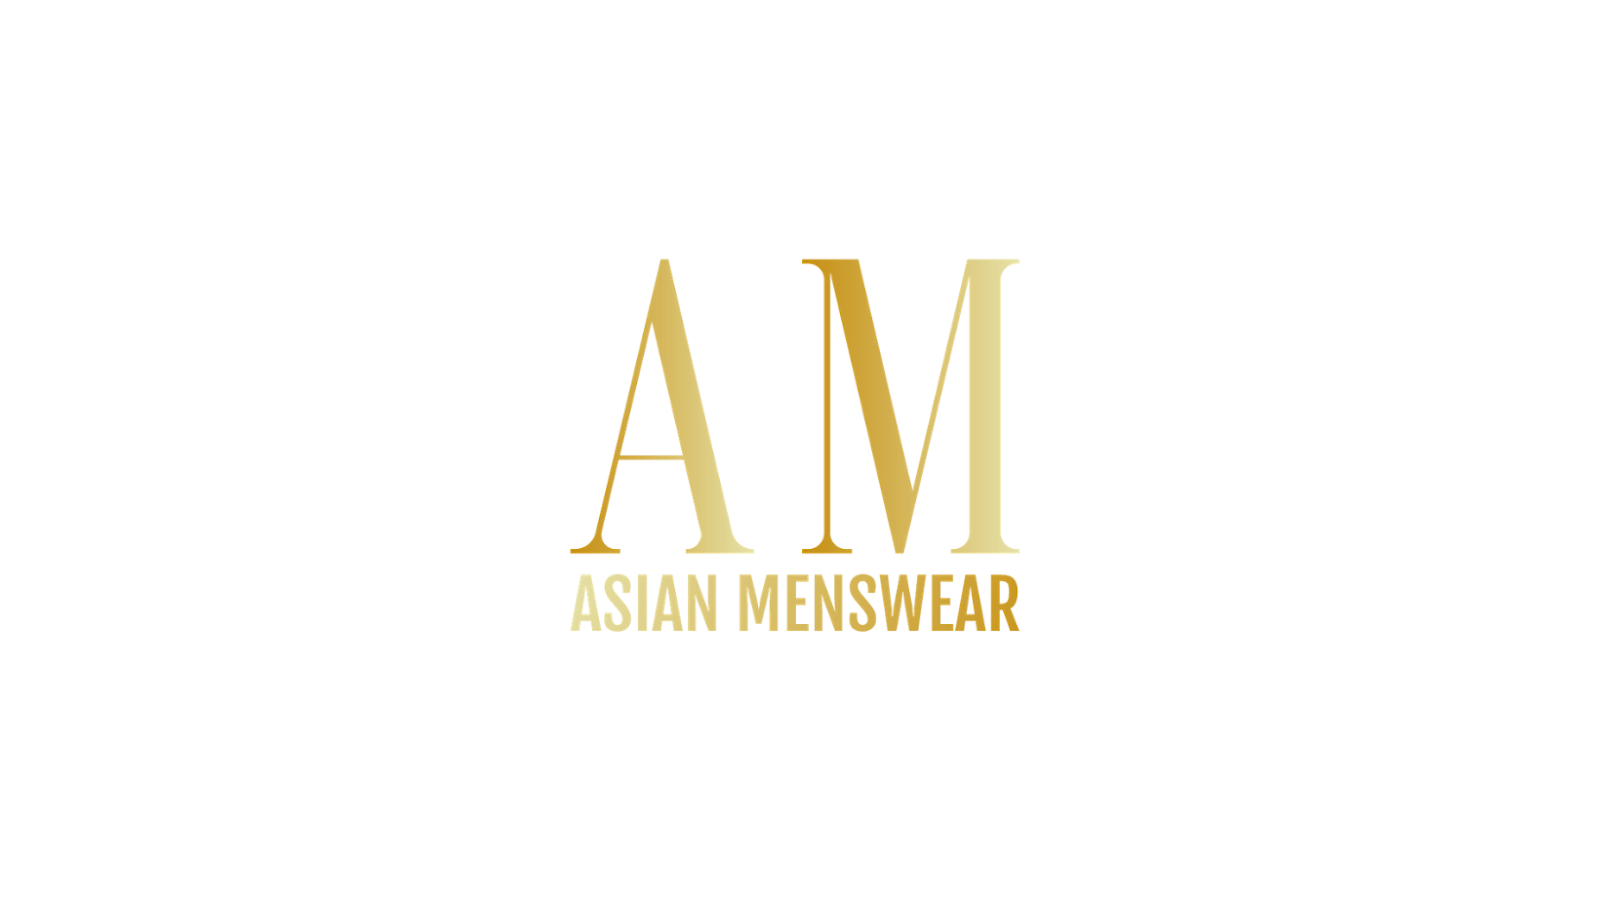 Asian Menswear